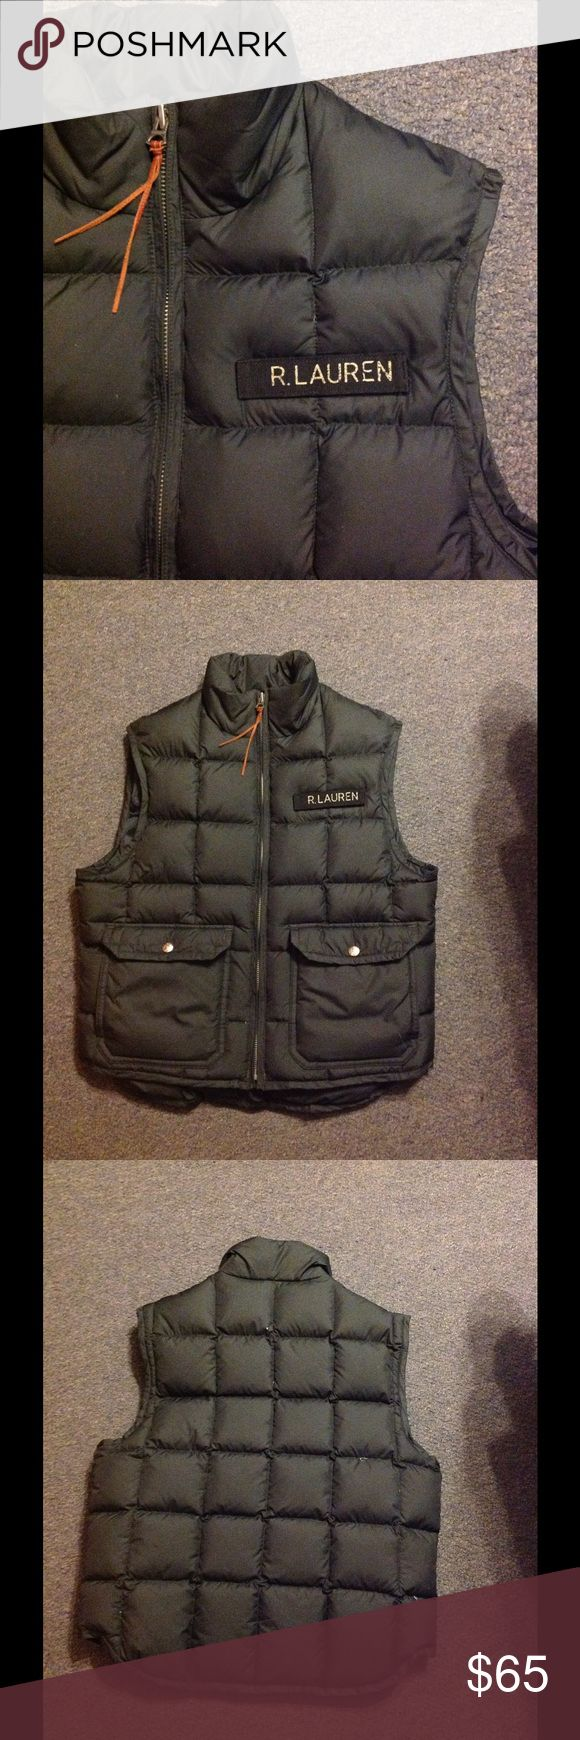 Ralph Lauren Polo Jeans Black Puffer Down Vest M Very nice Ralph Lauren Puffer Down Vest. Black zip up. Down/waterfowl feathers filled. Great condition Ralph Lauren Jackets & Coats Puffers